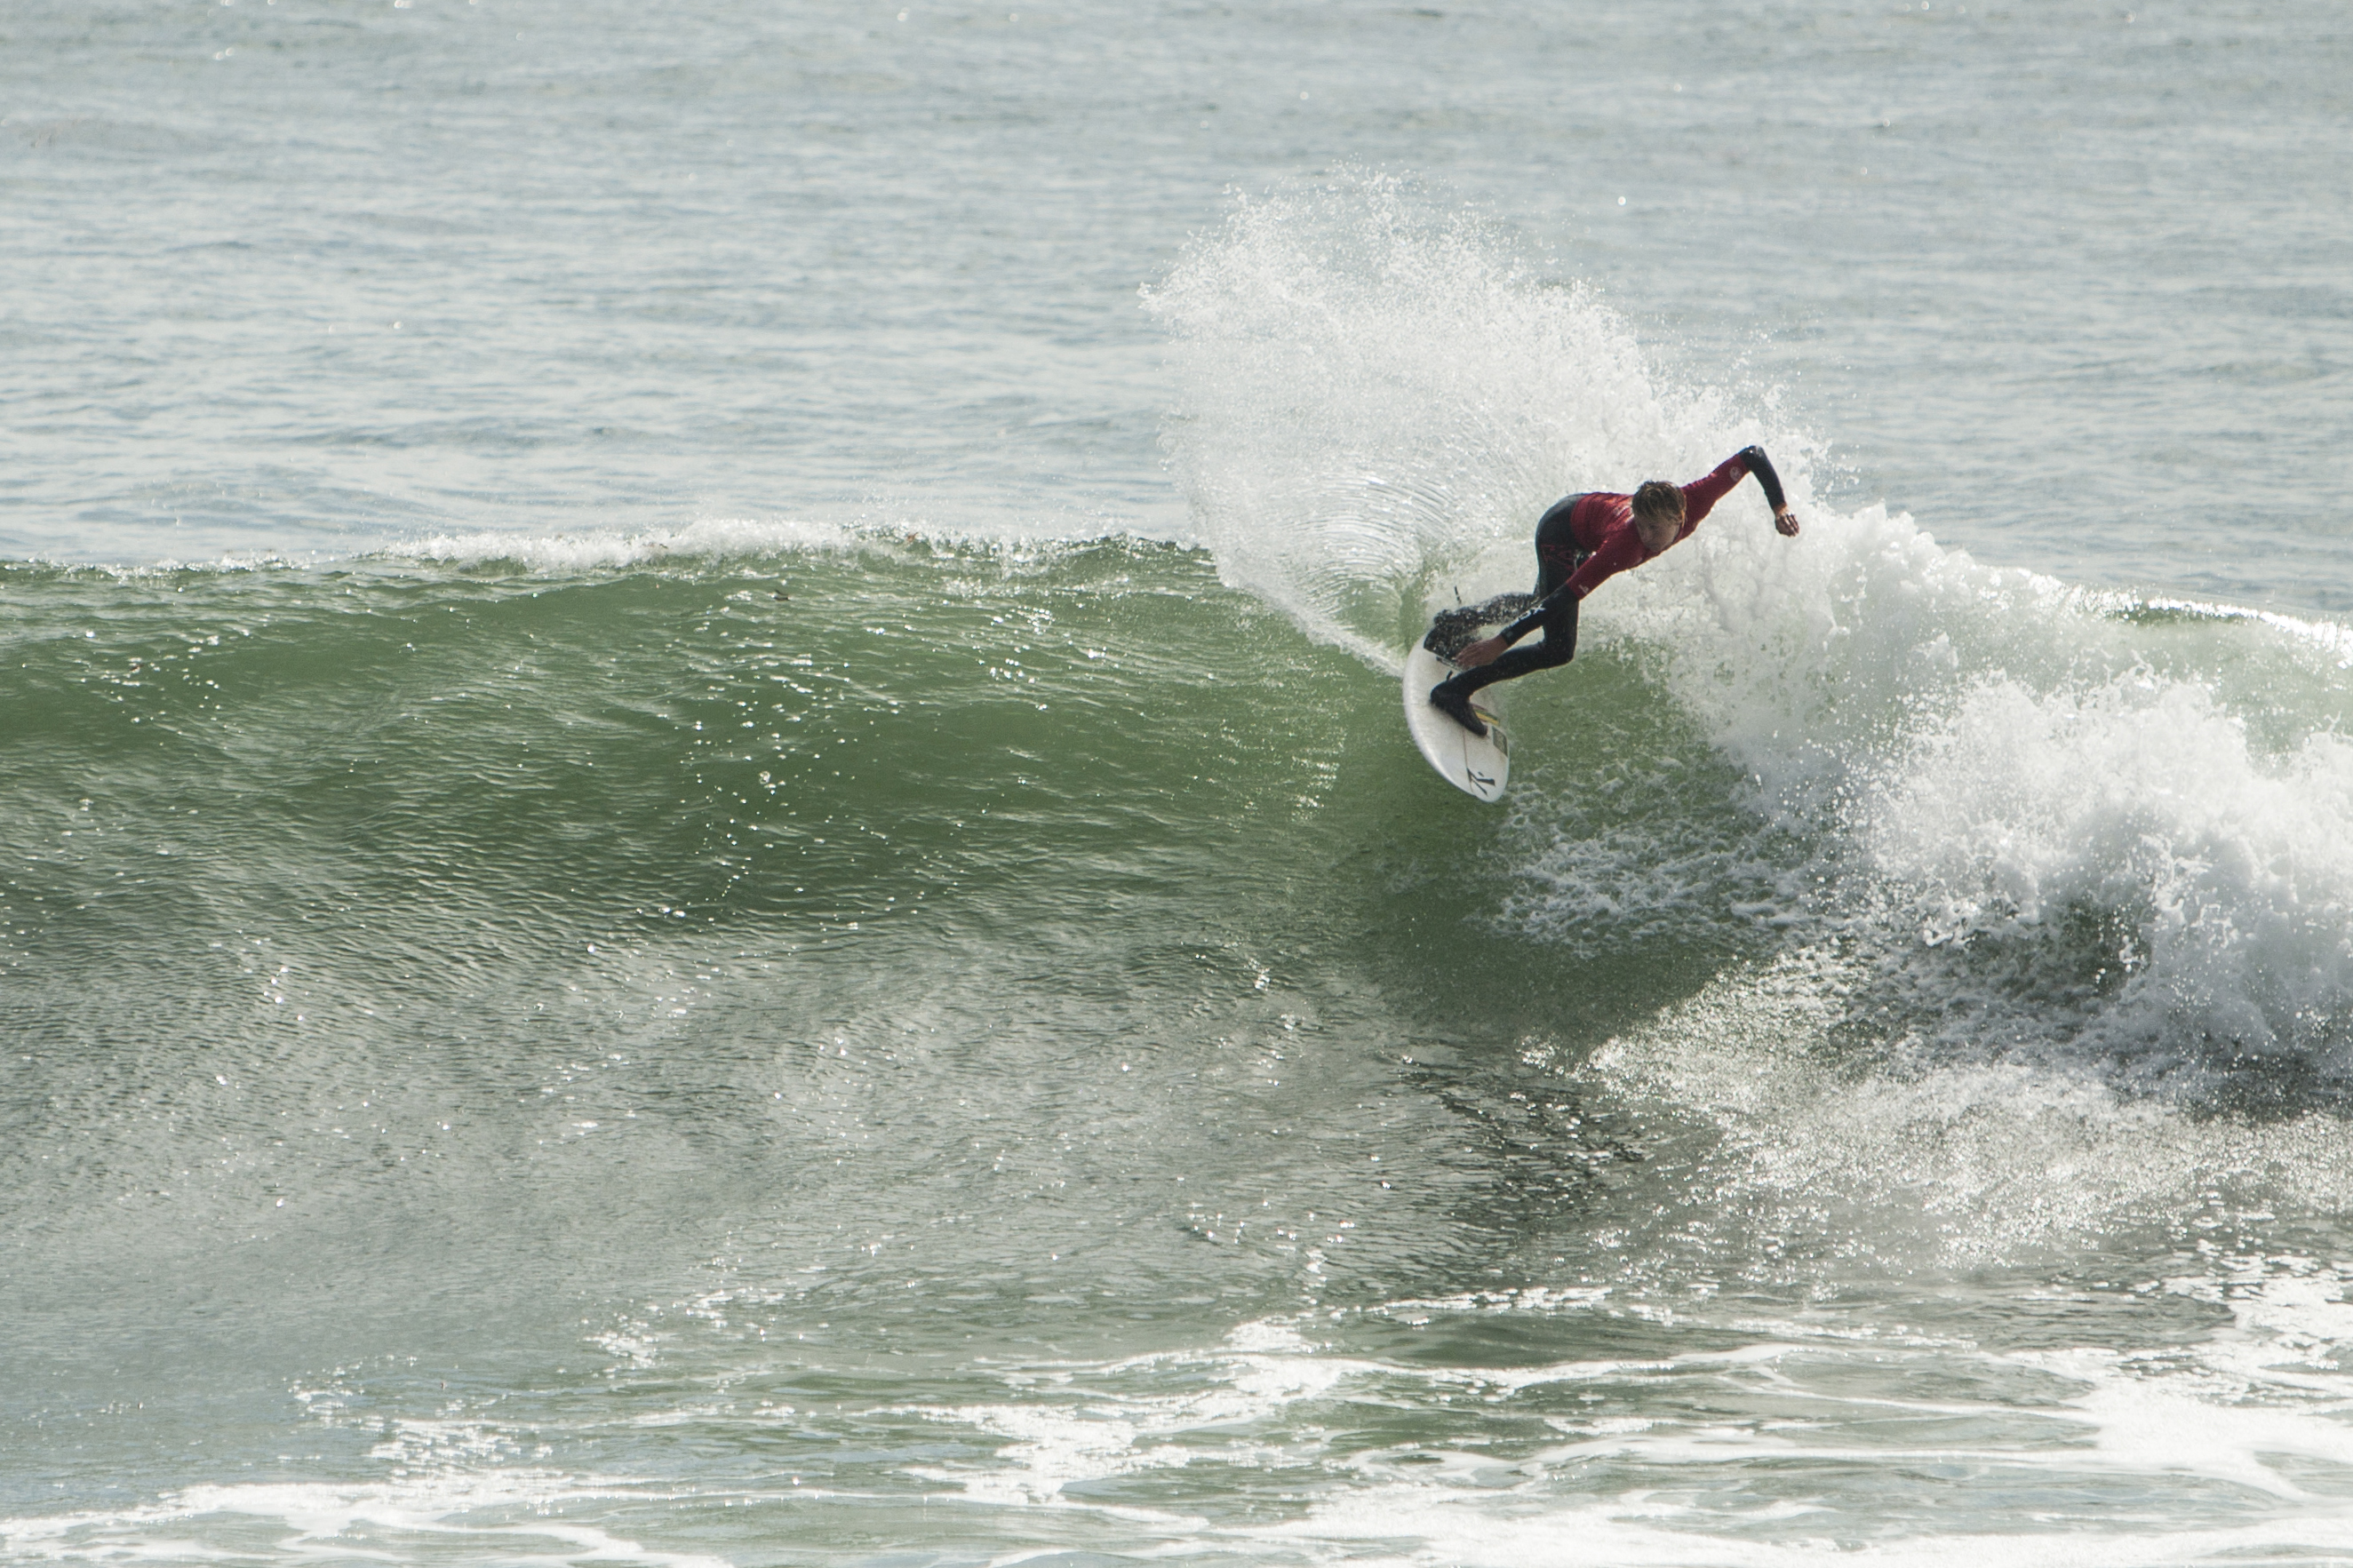 Shredding Steamer Lane